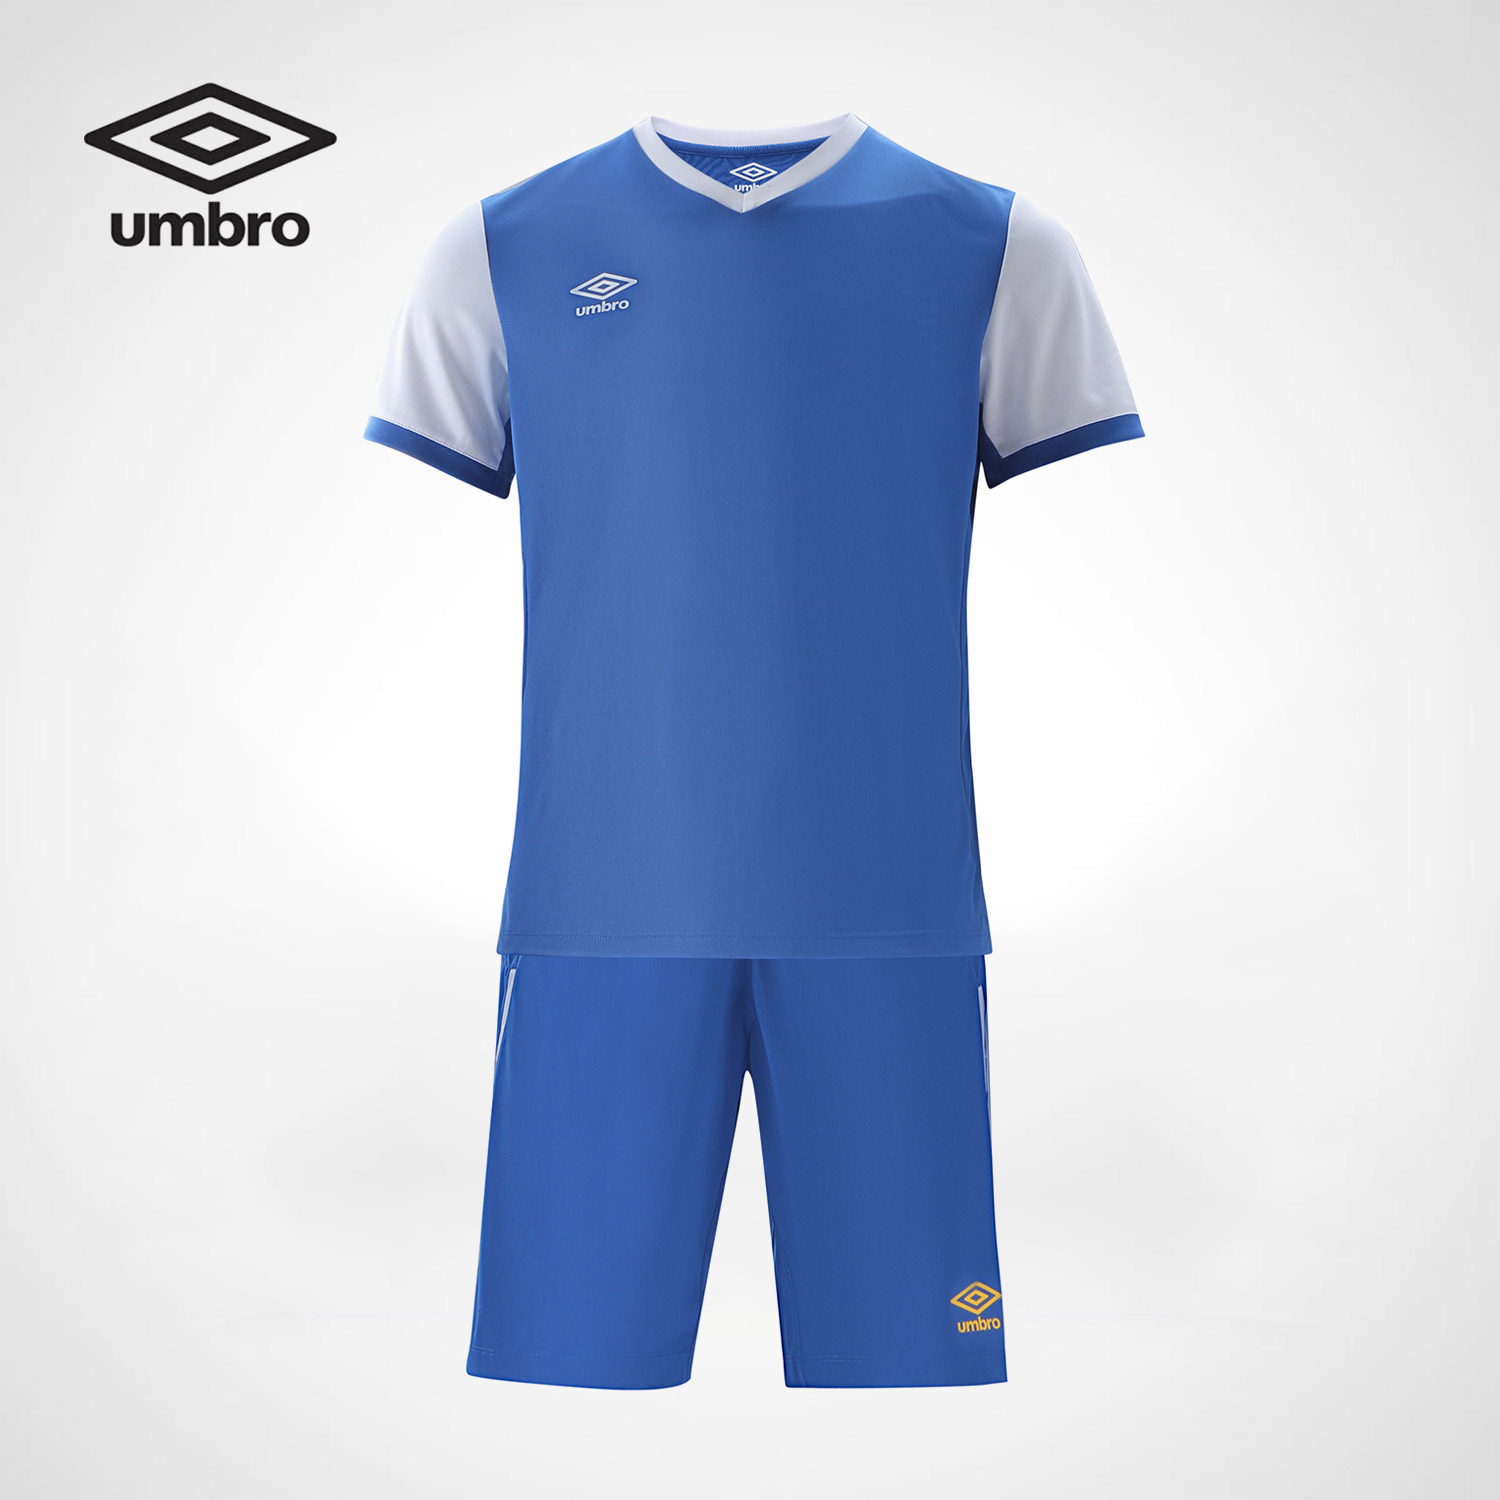 Umbro Soccer Shirt Clothing, Shoes & Accessories